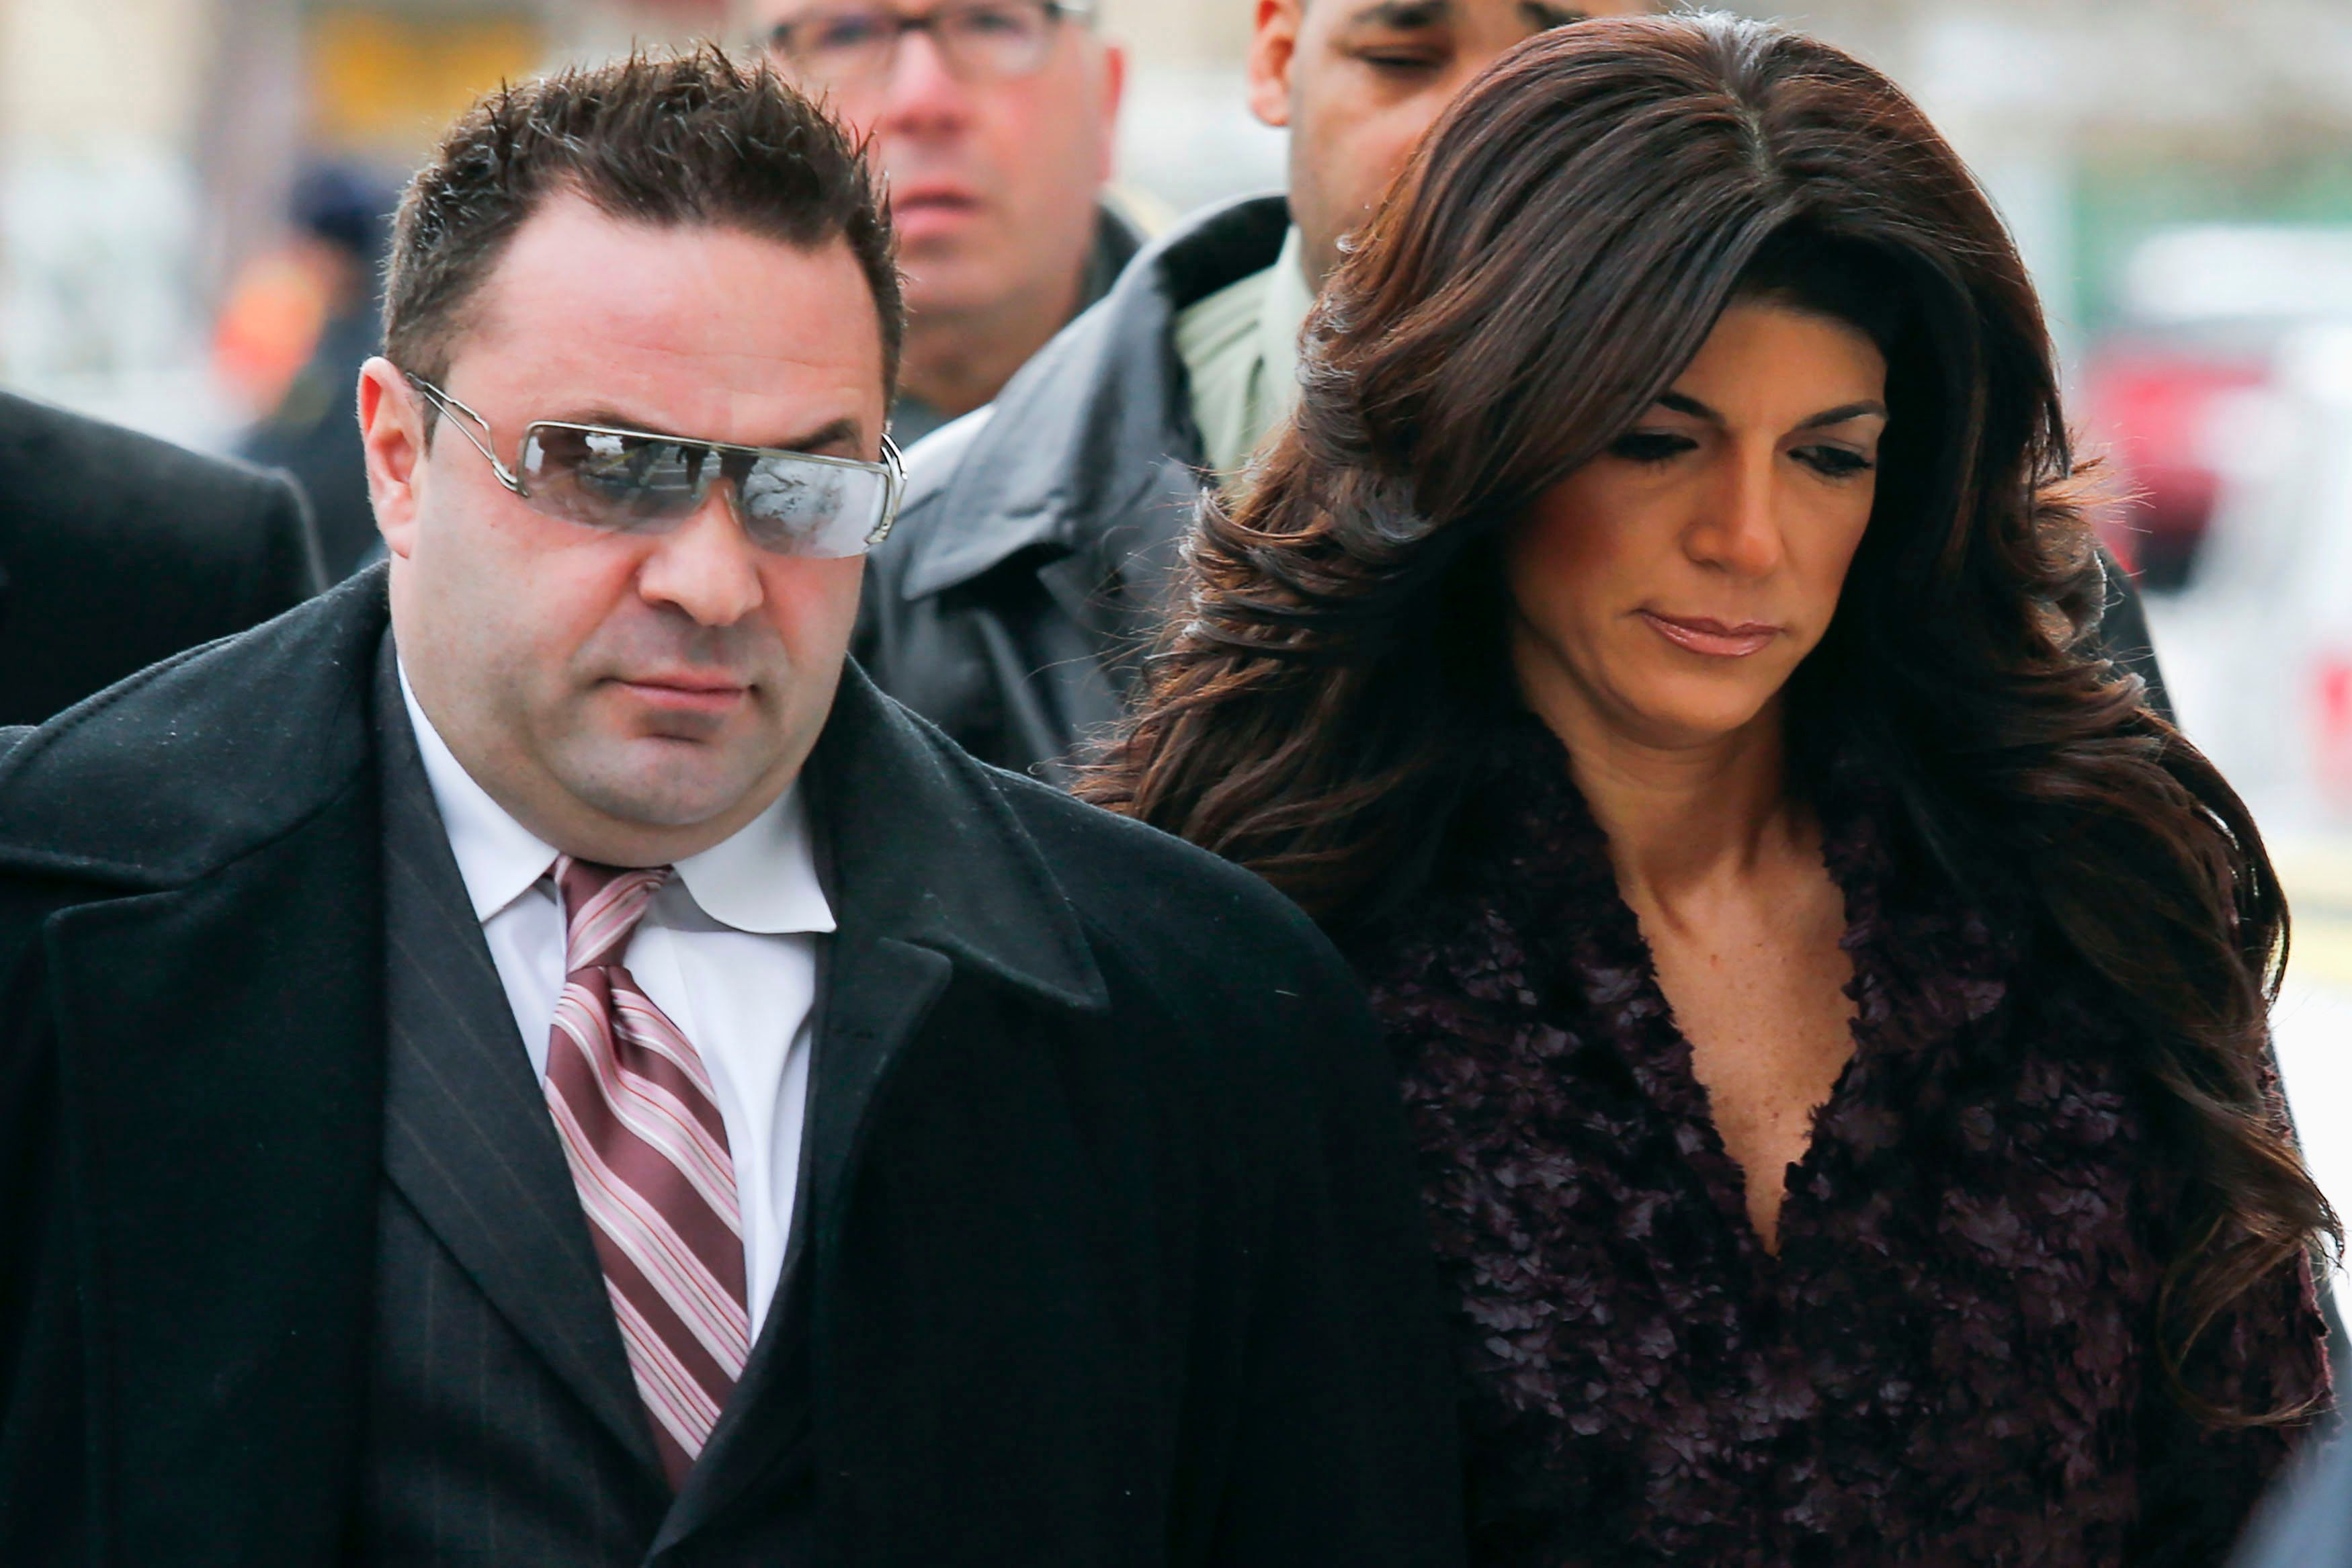 'RHONJ' Star Joe Giudice Reportedly Ordered to Be Deported to Italy